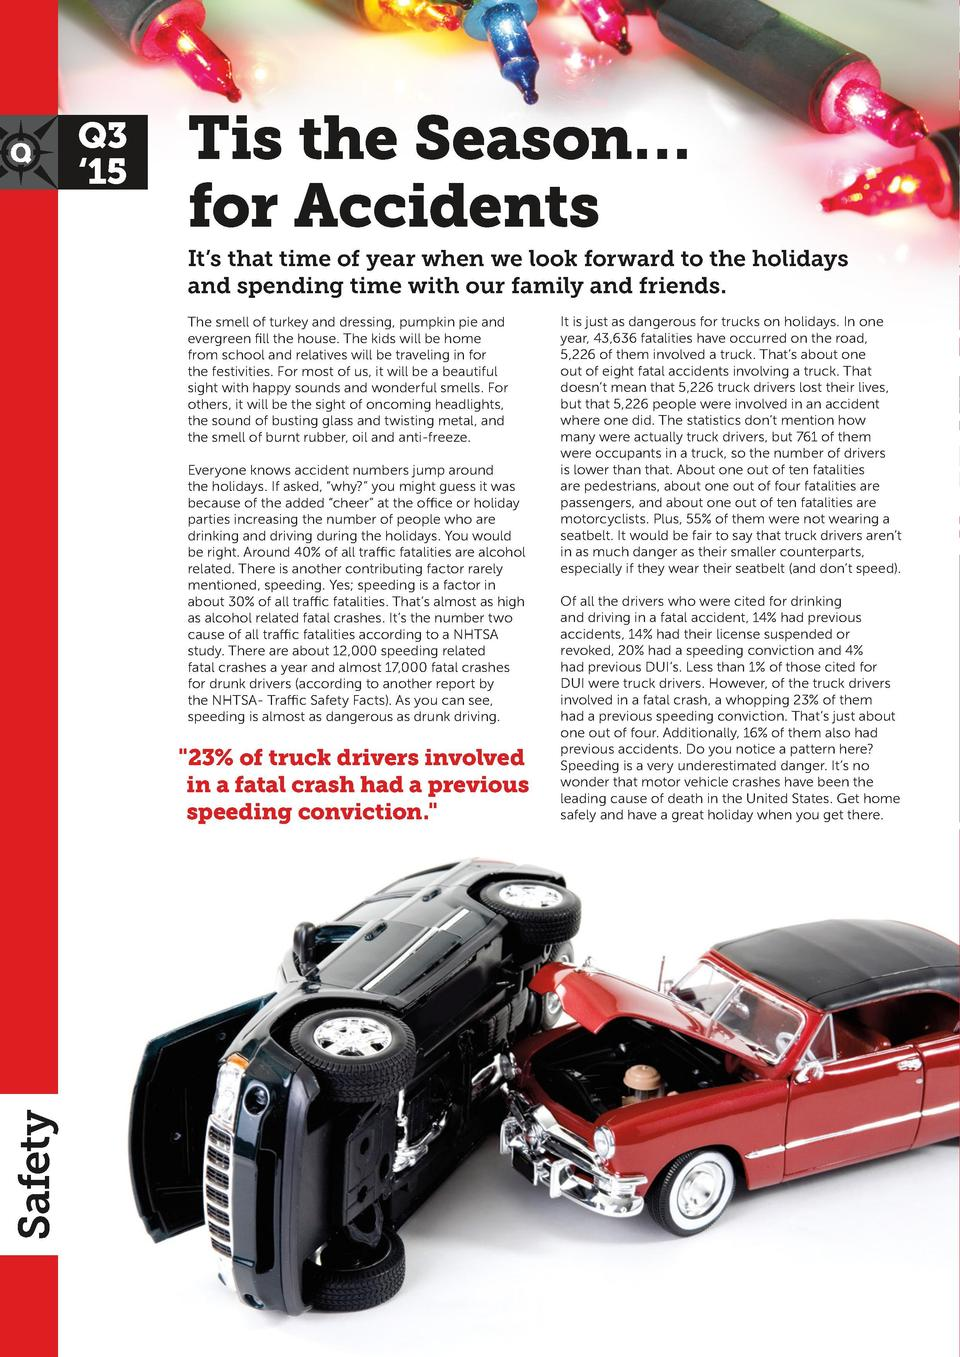 Q3    15  Tis the Season    for Accidents It   s that time of year when we look forward to the holidays and spending time ...